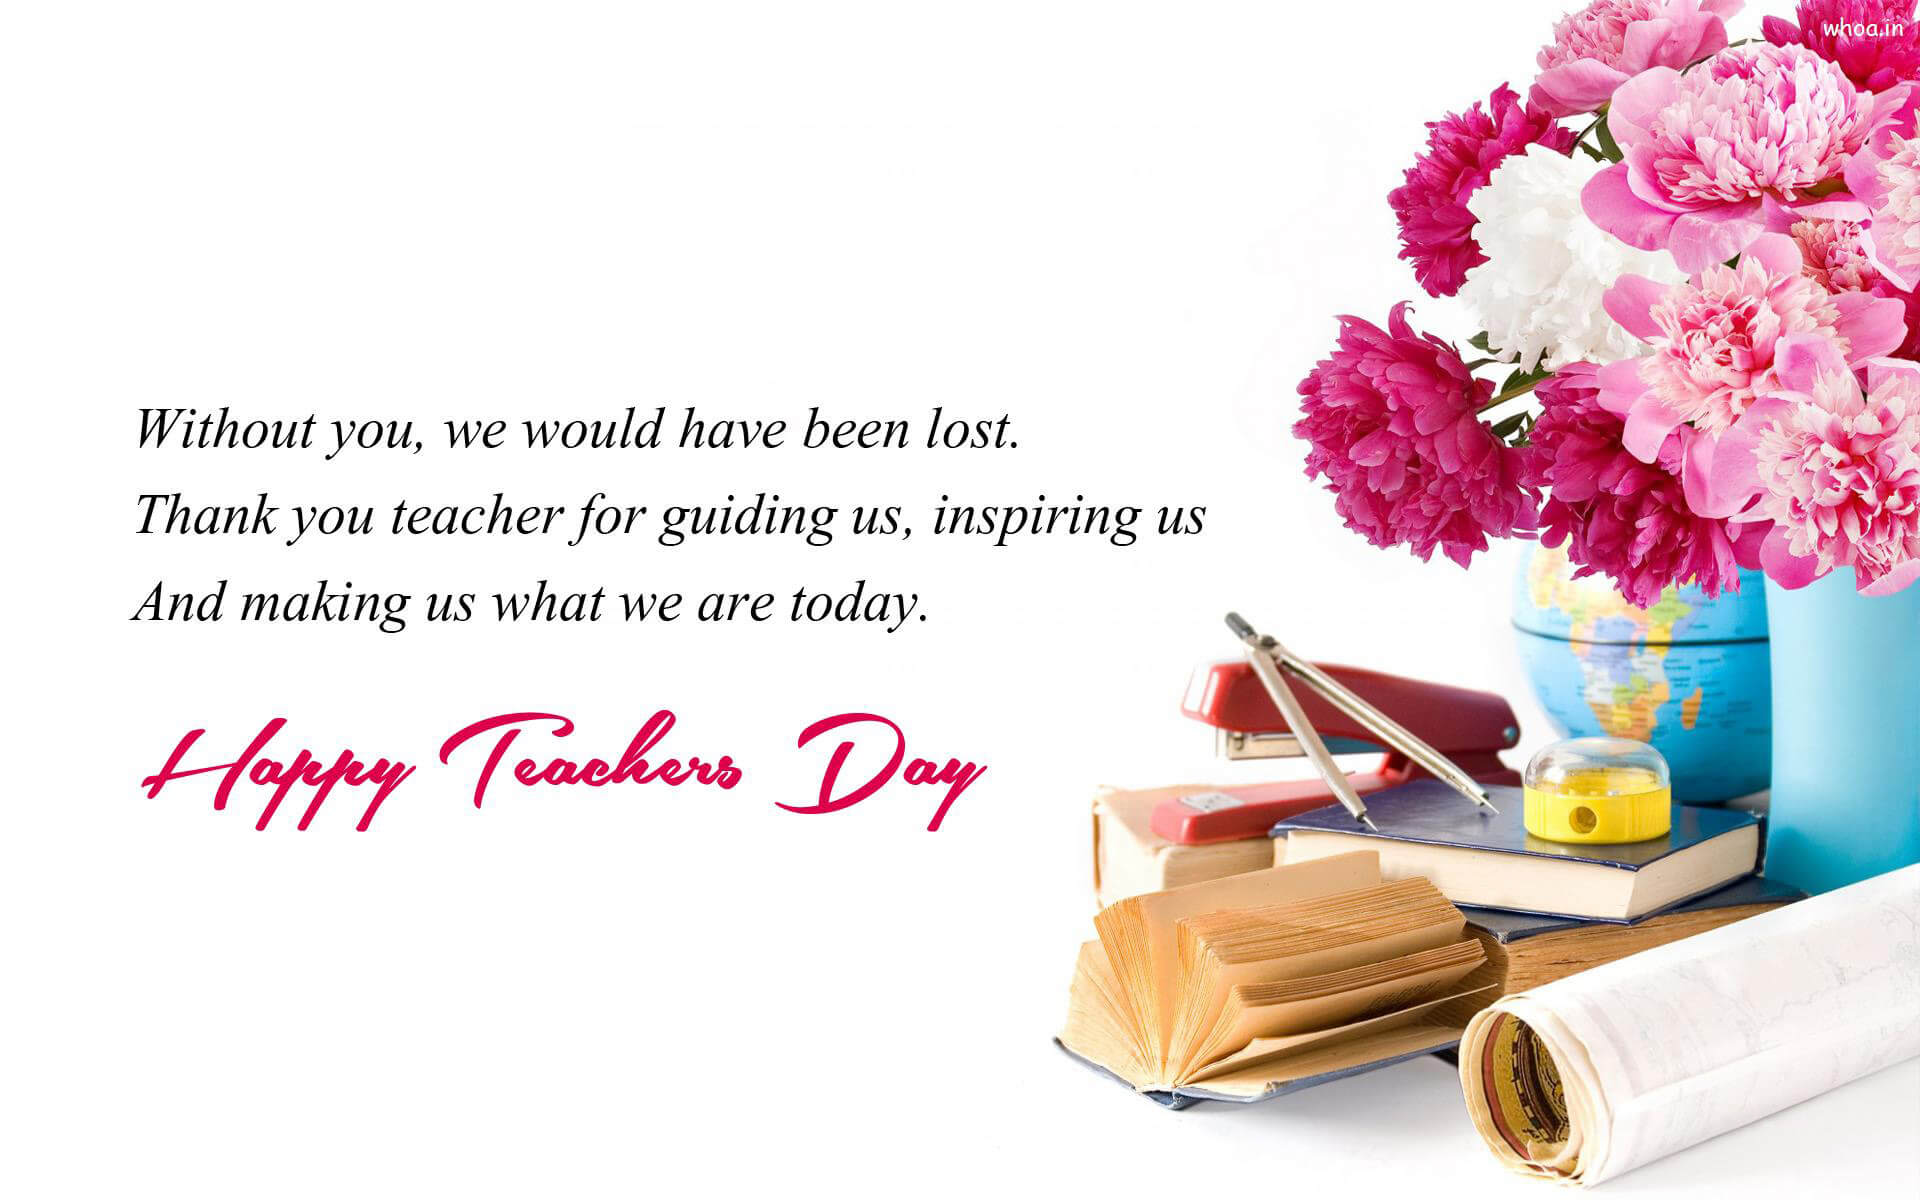 Happy Teachers Day Wishes Cute Best Hd Wallpaper Inspirational Thank You Teachers Day Quotes 1920x1200 Download Hd Wallpaper Wallpapertip